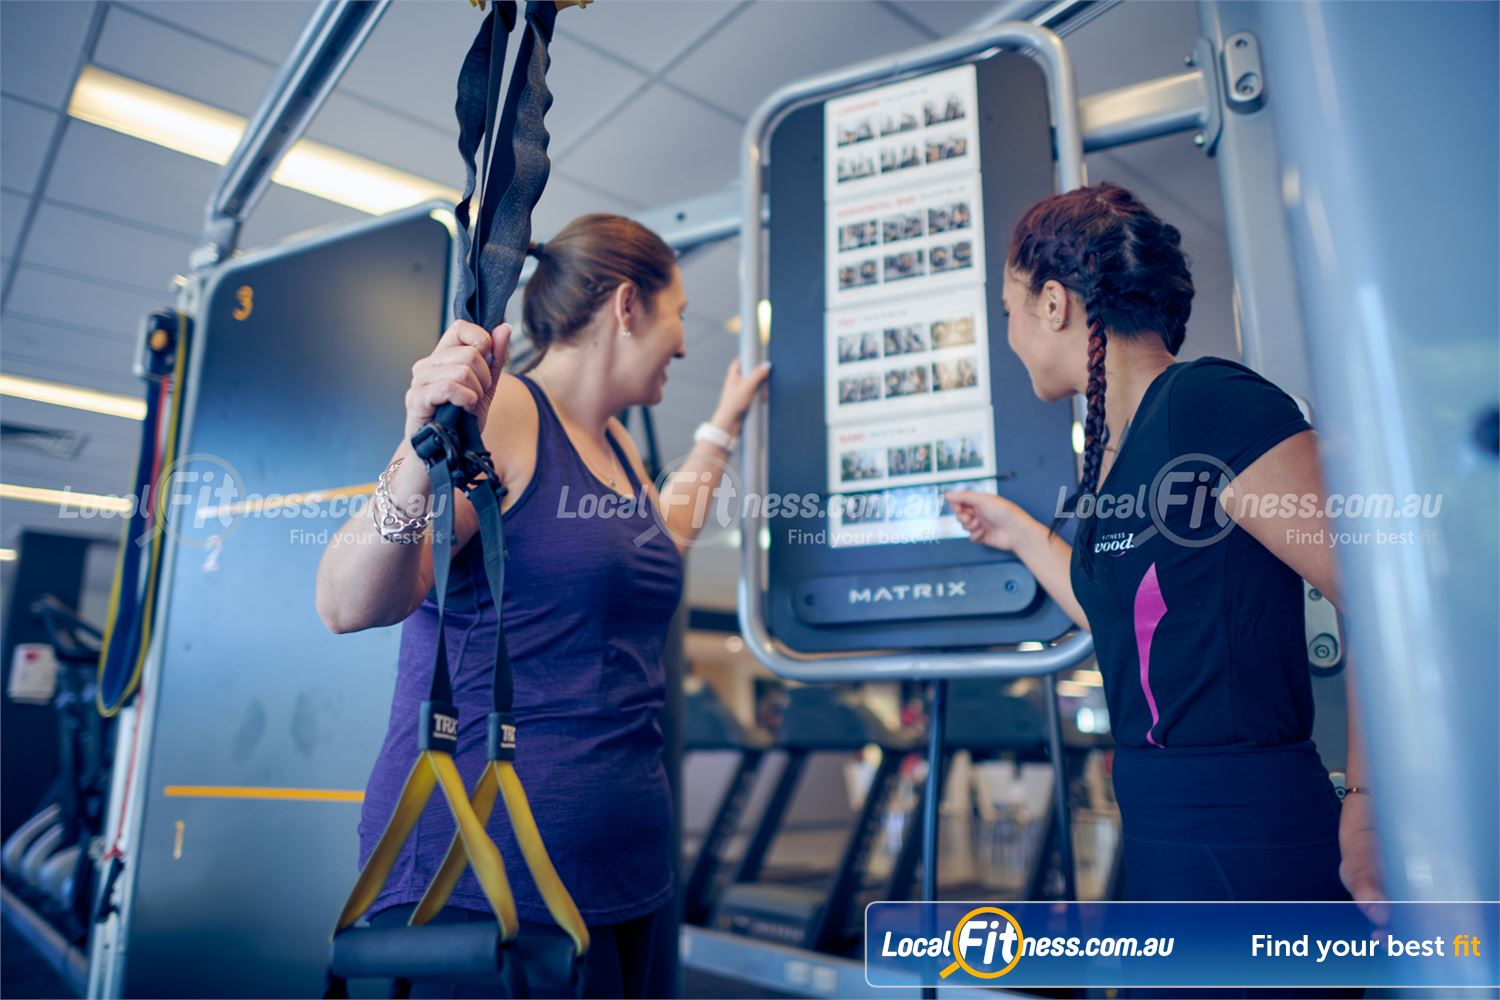 Fernwood Fitness Near Elwood Get the right advice about women's training from our St Kilda personal trainers.